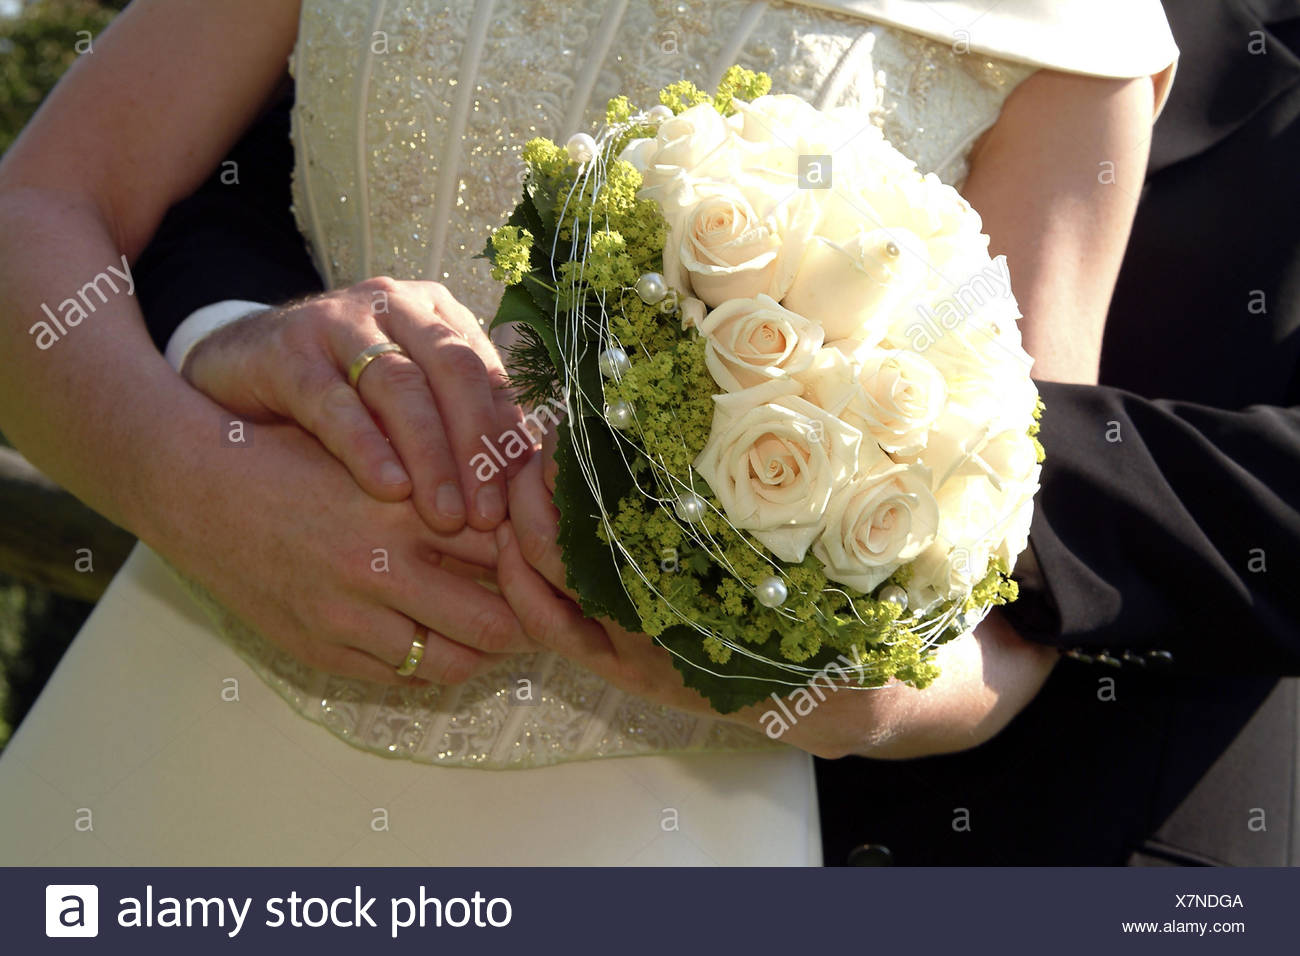 Bride and groom stand one after the other detail embrace bridal bride and groom stand one after the other detail embrace bridal bouquet wedding photo wedding marriage marry before marriage ceremony wedding izmirmasajfo